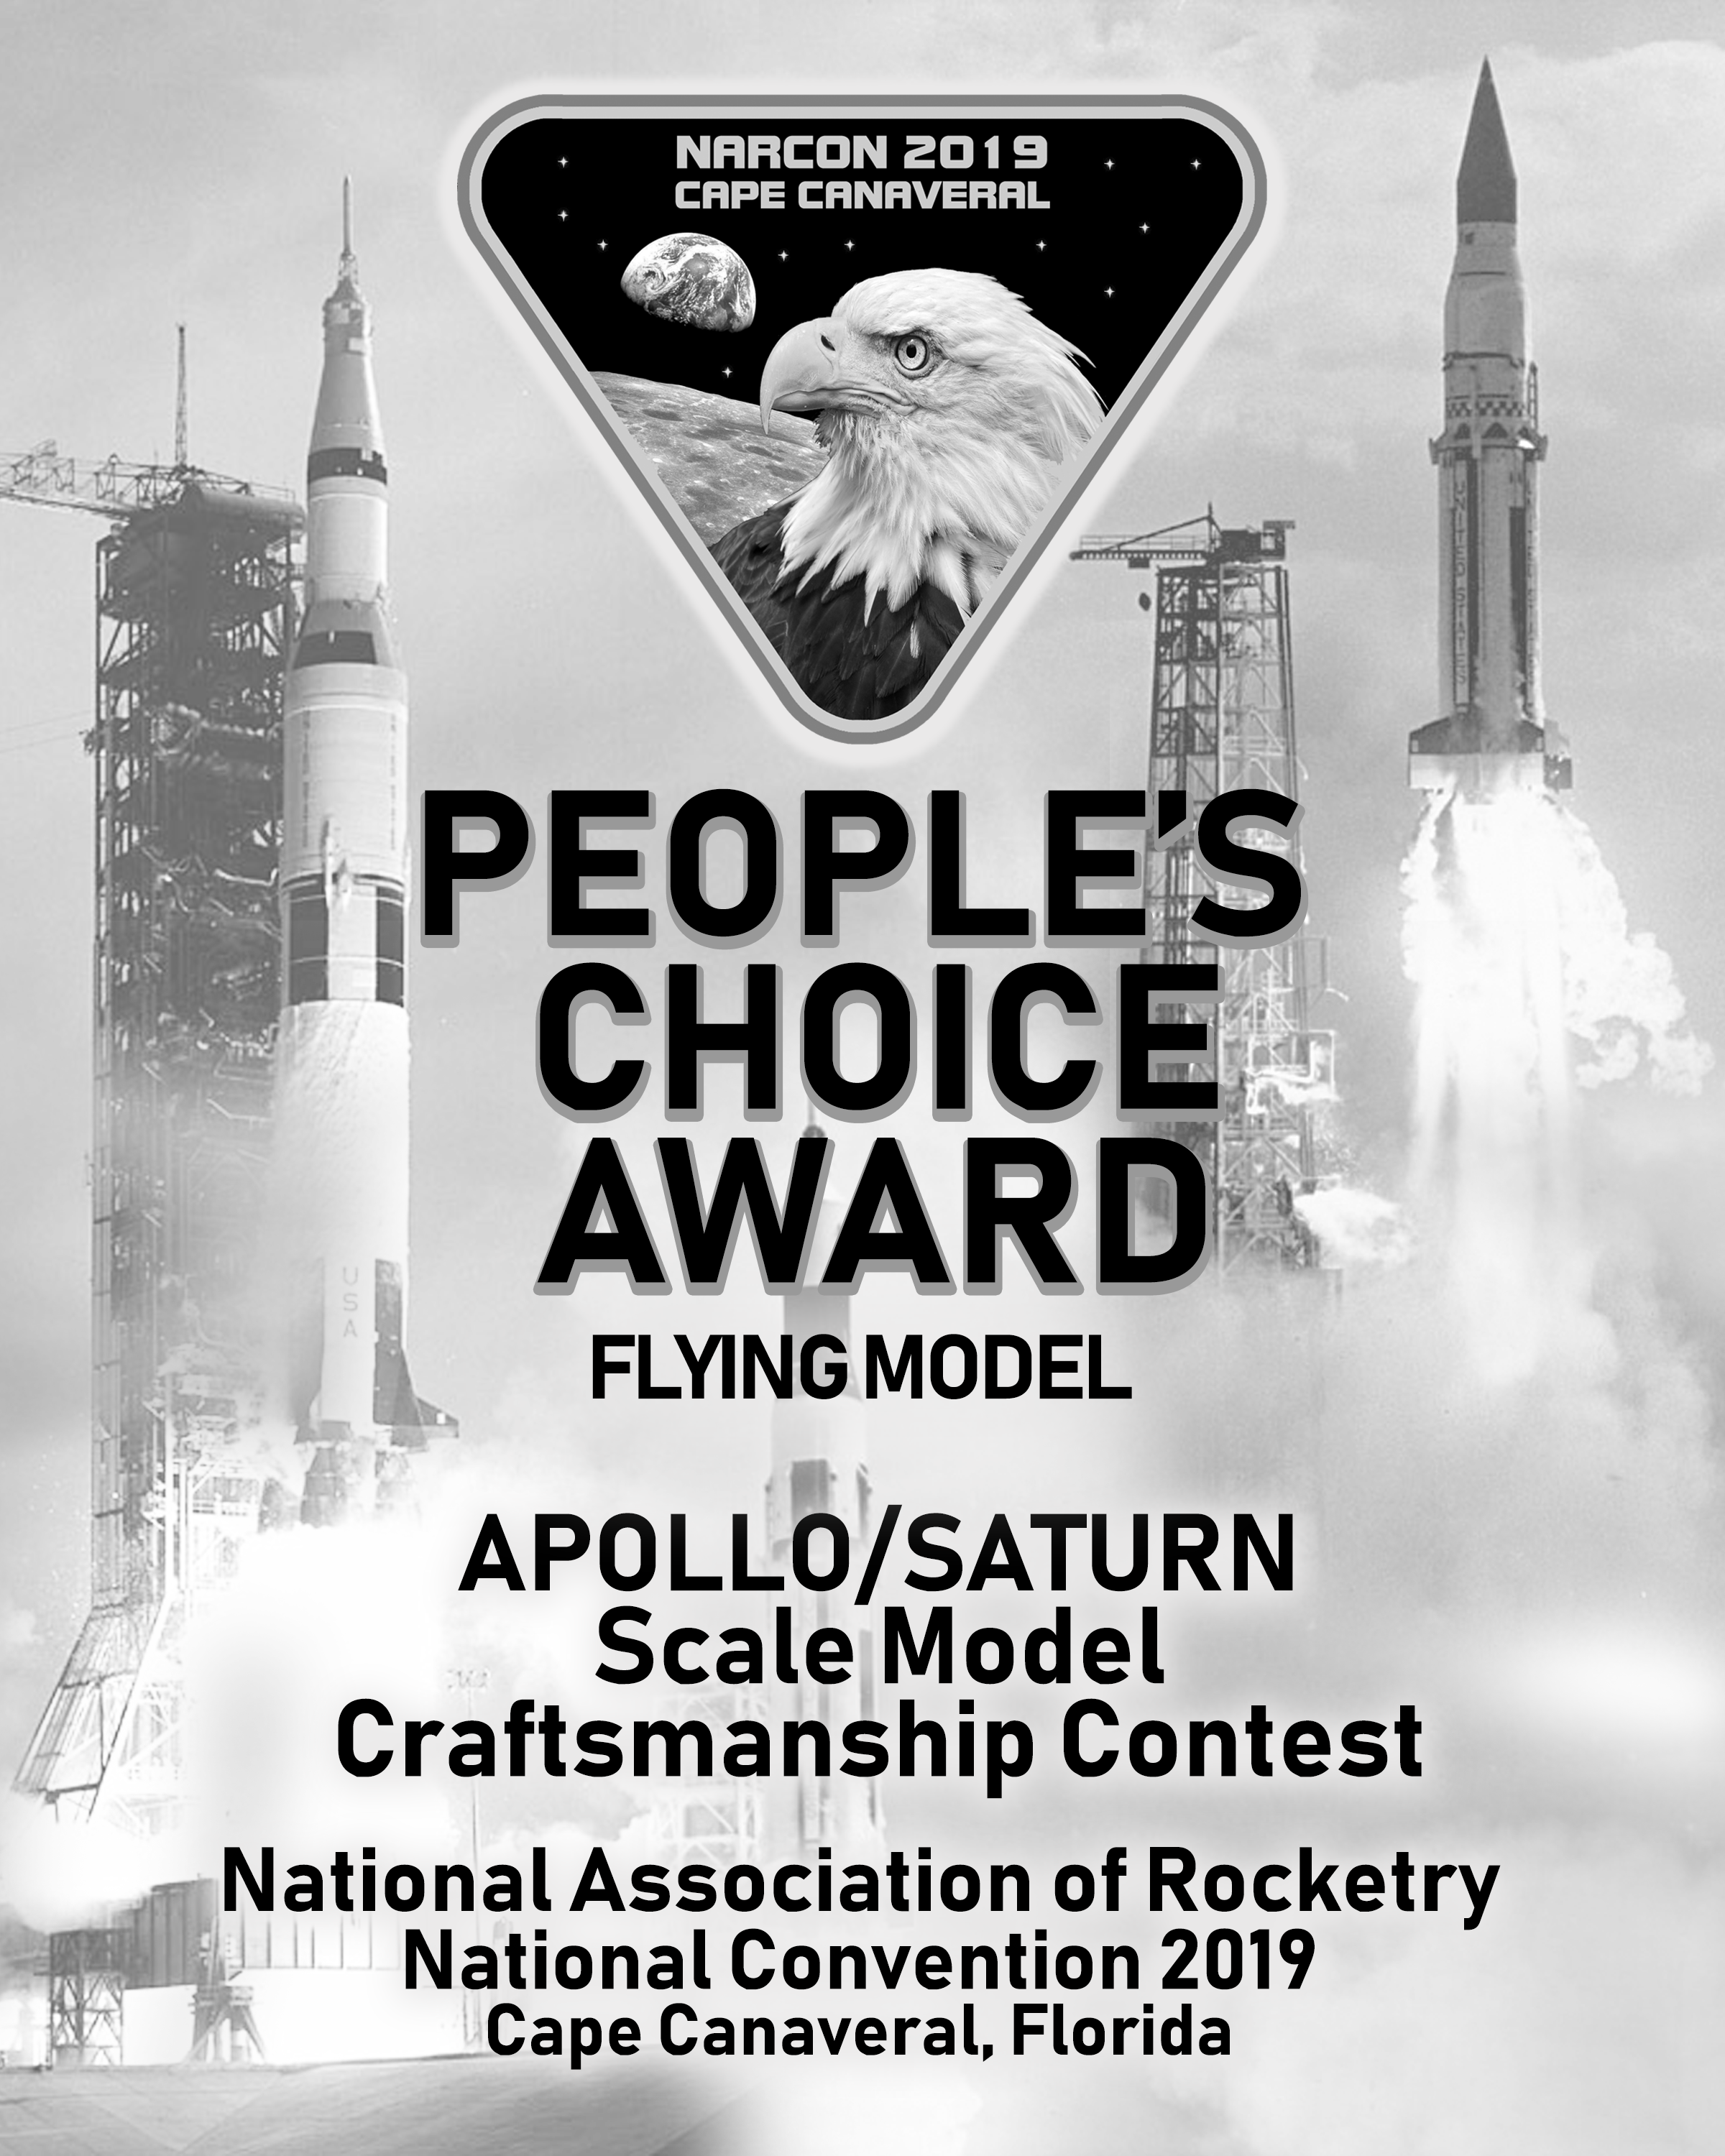 Schedule | National Association of Rocketry